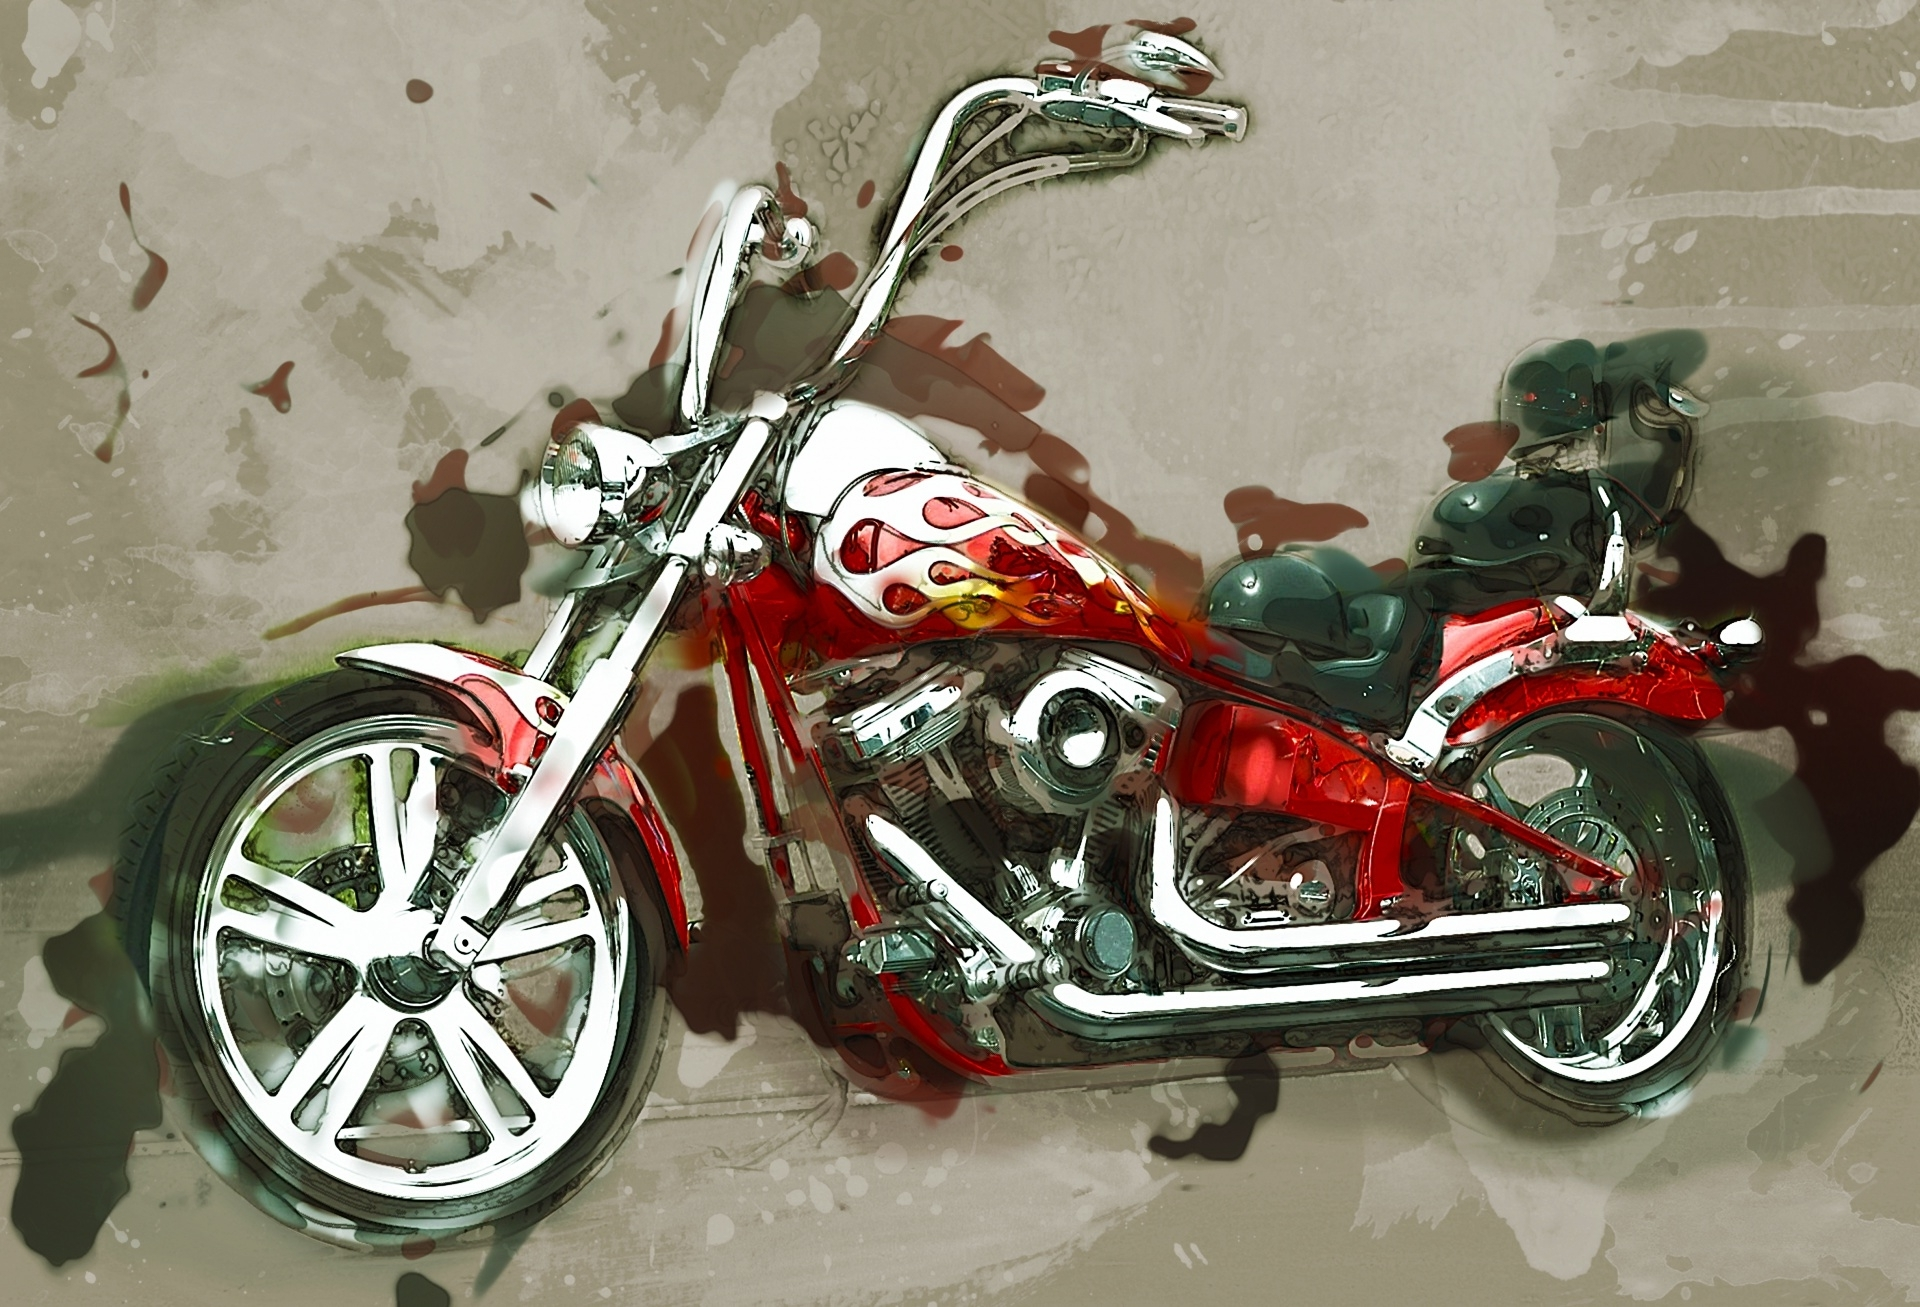 Well Known Motorcycle Wall Art With Regard To Motorcycle Wall Art Free Stock Photo – Public Domain Pictures (View 6 of 15)